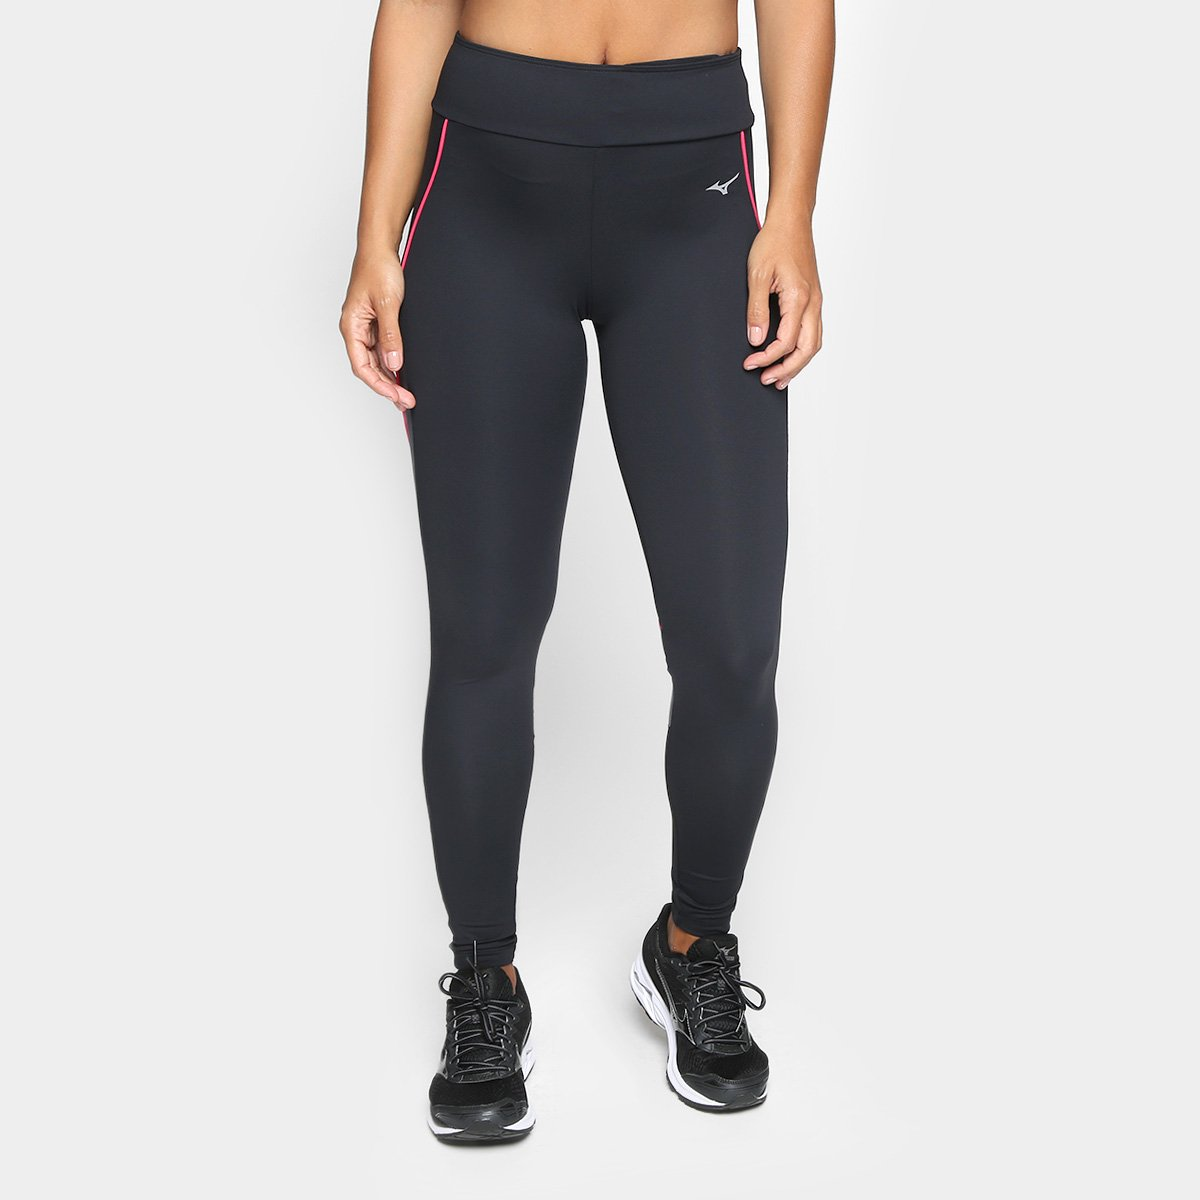 Chumbo Mizuno Run e Legging Feminina Calça Rosa Creation 0 2 q0axZ